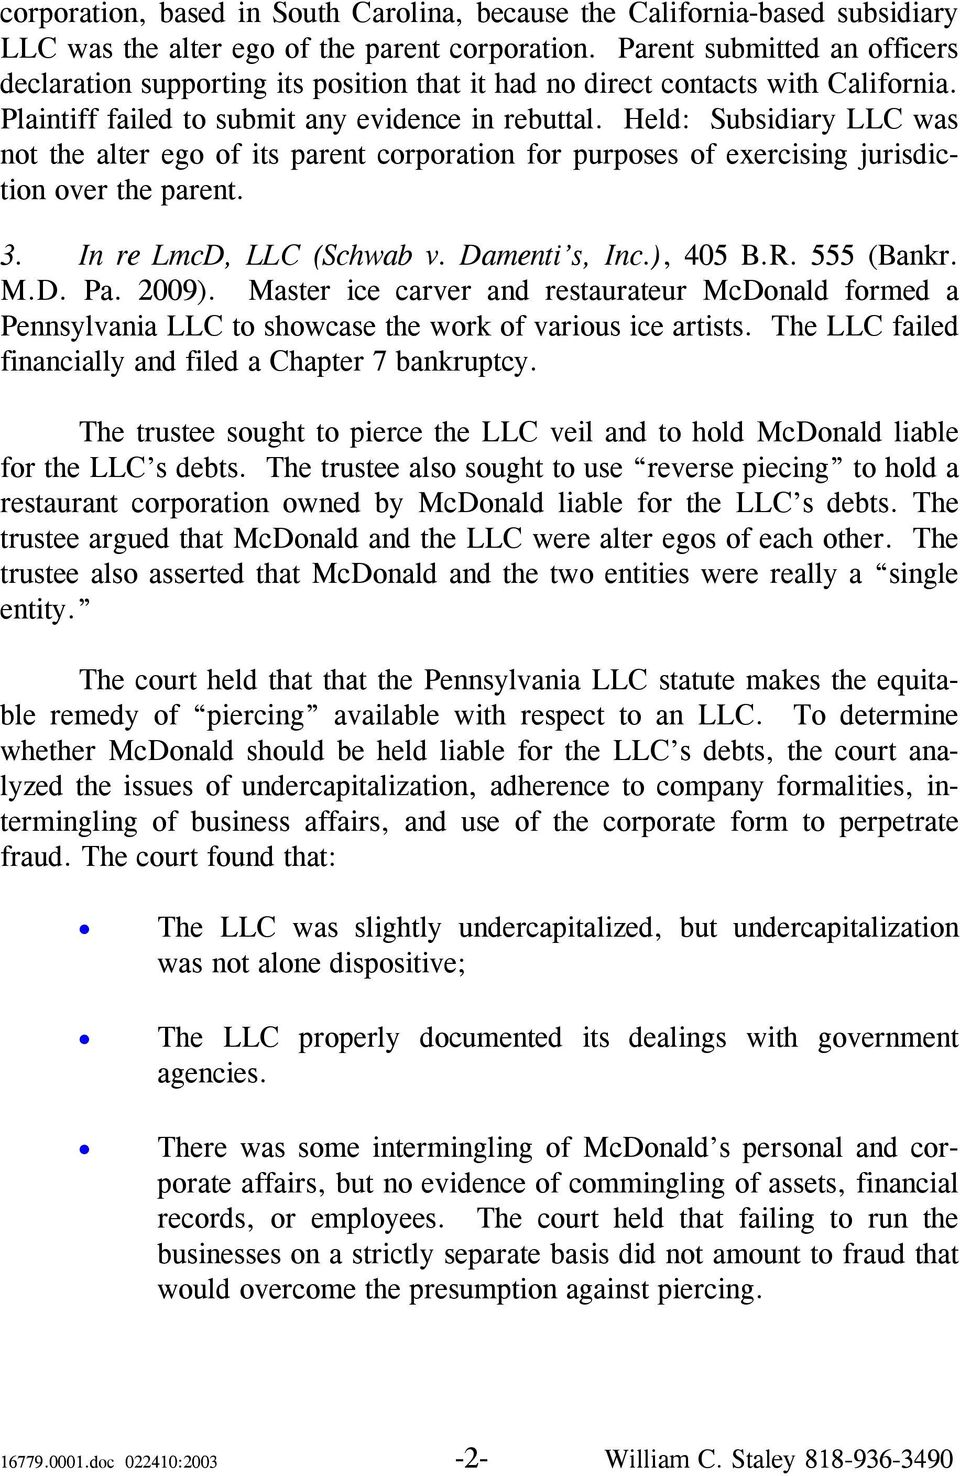 Held: Subsidiary LLC was not the alter ego of its parent corporation for purposes of exercising jurisdiction over the parent. 3. In re LmcD, LLC (Schwab v. Damenti s, Inc.), 405 B.R. 555 (Bankr. M.D. Pa.